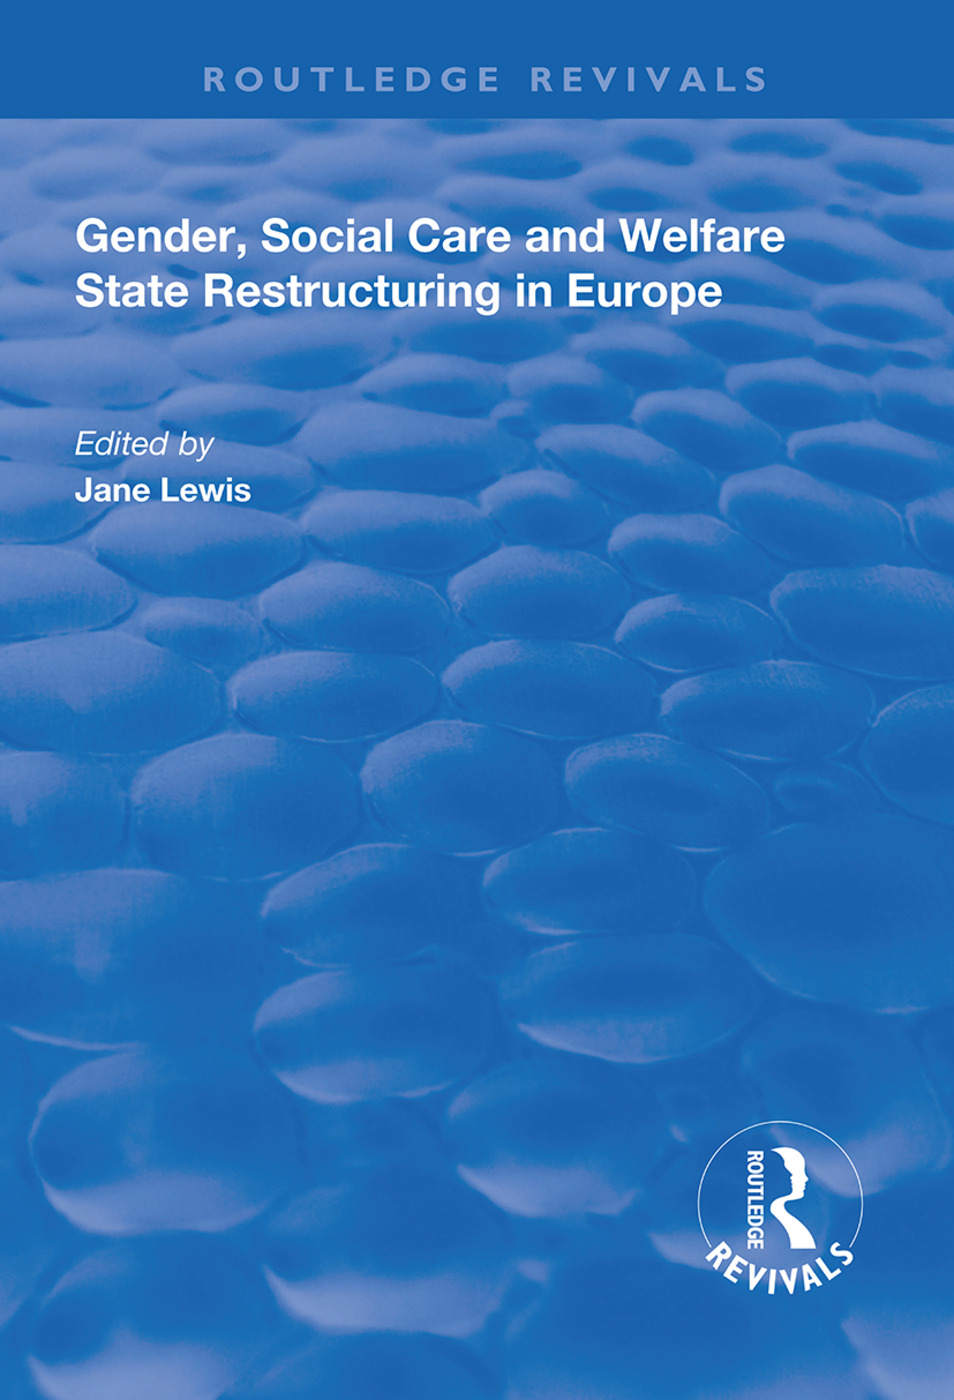 Gender, Social Care and Welfare State Restructuring in Europe